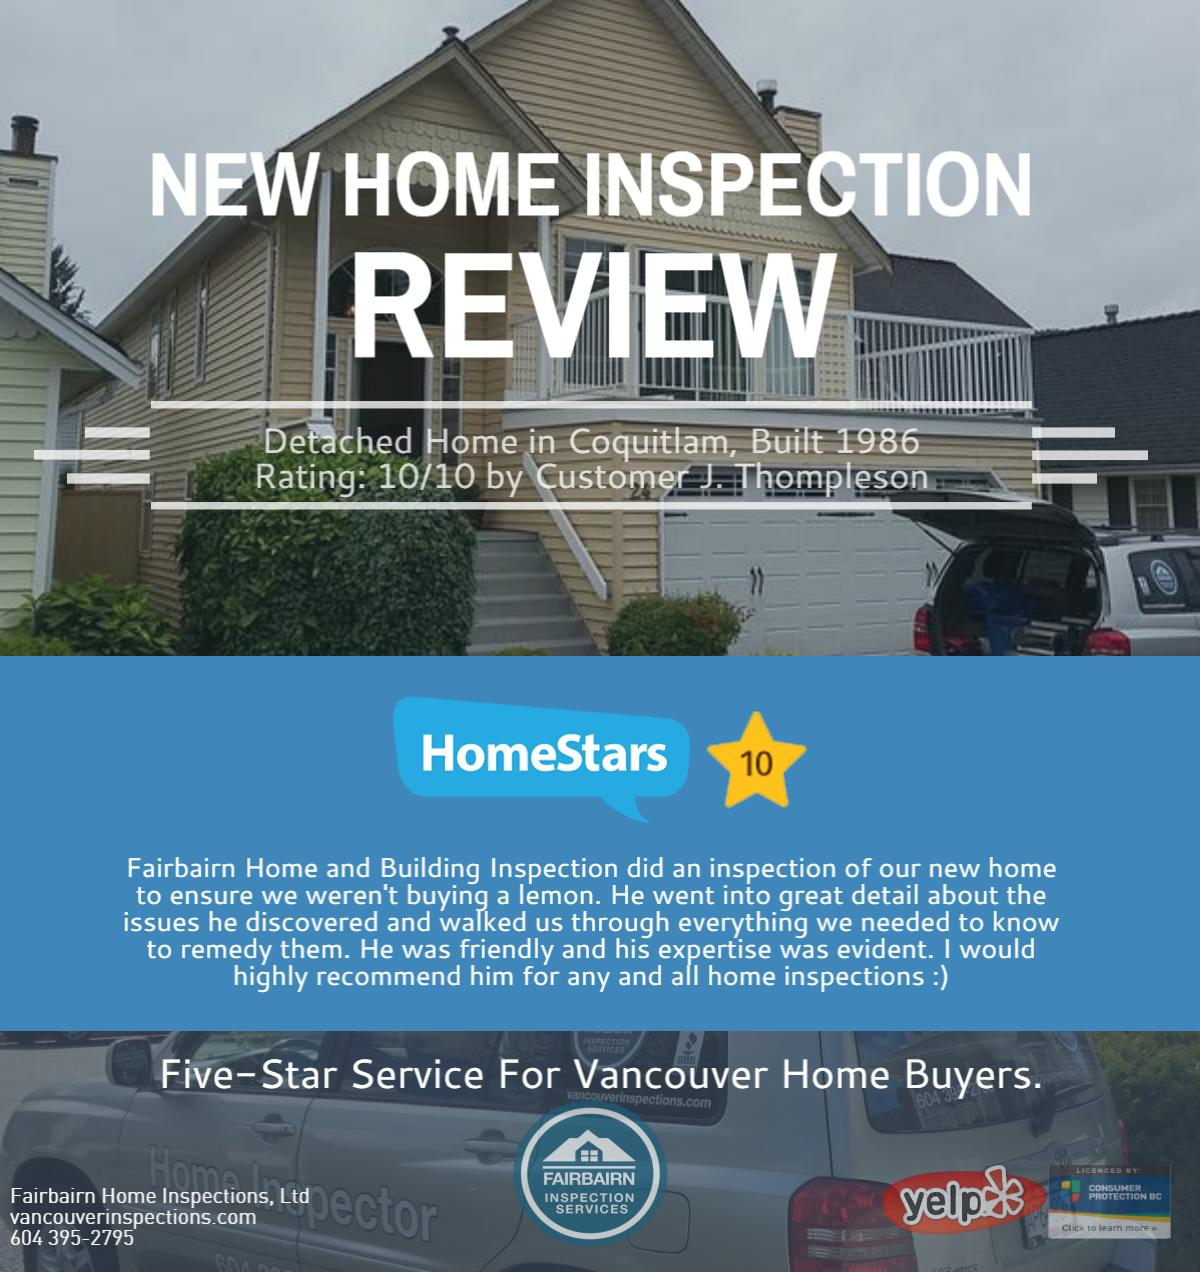 Home Inspector Review Coquitlam